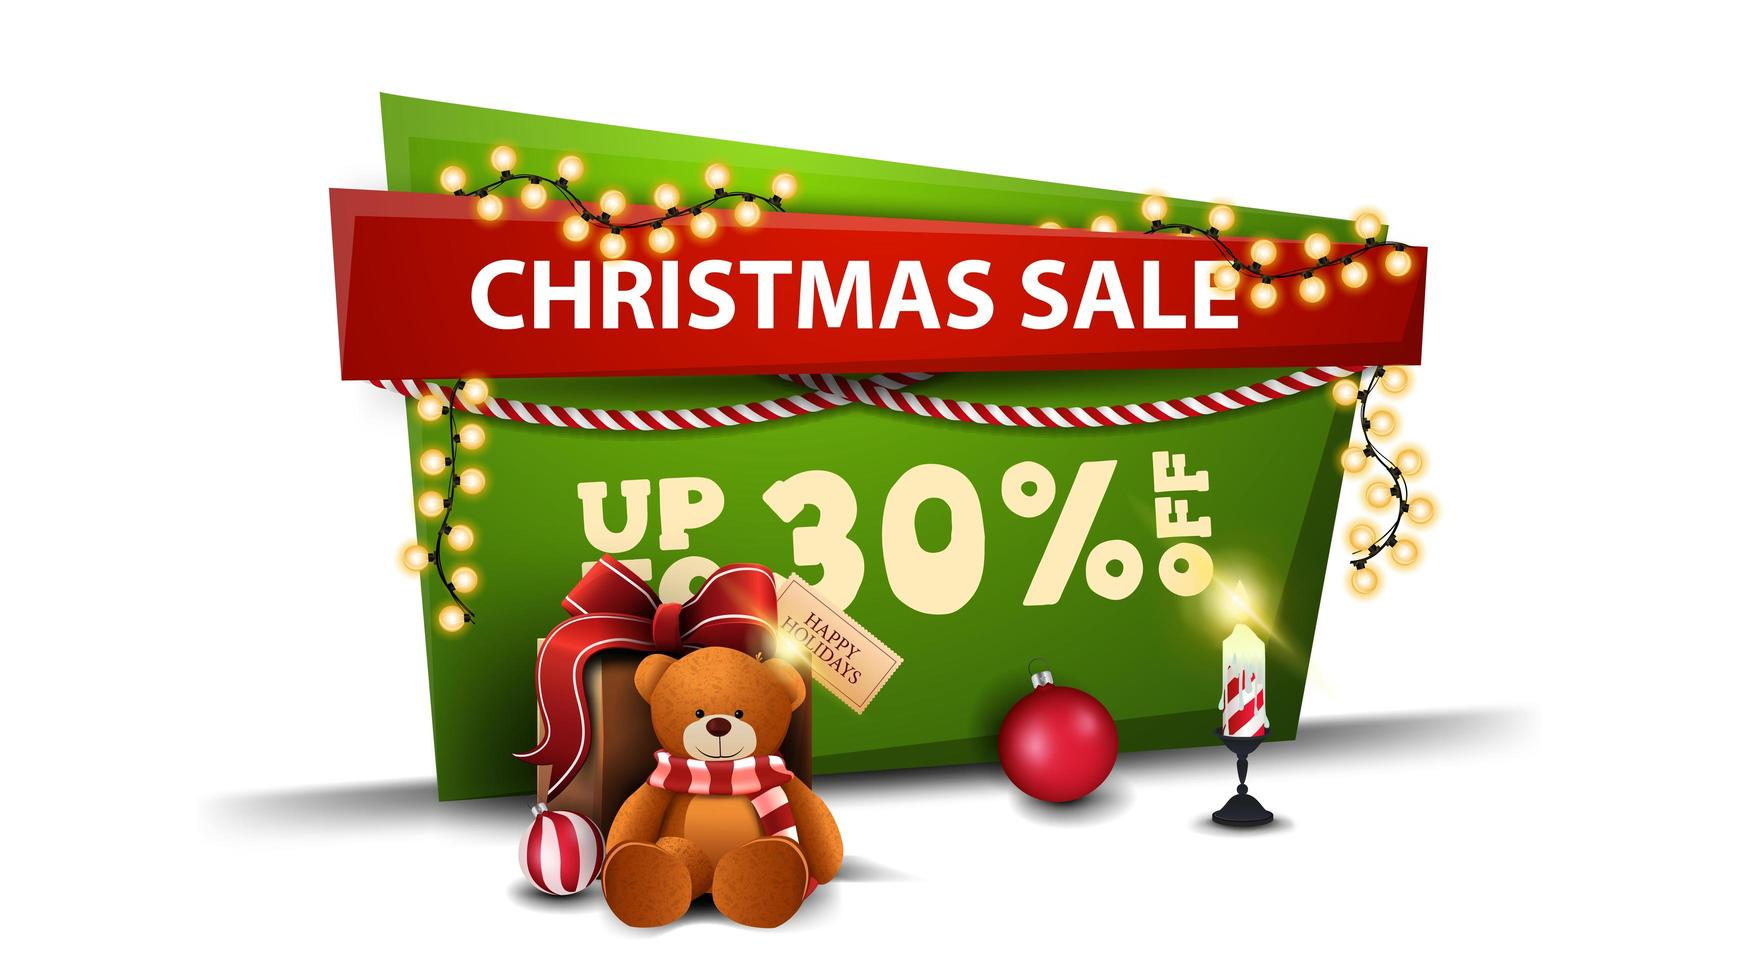 Christmas sale, up to 30 off, green and red discount banner in cartoon style with garland and present with Teddy bear vector